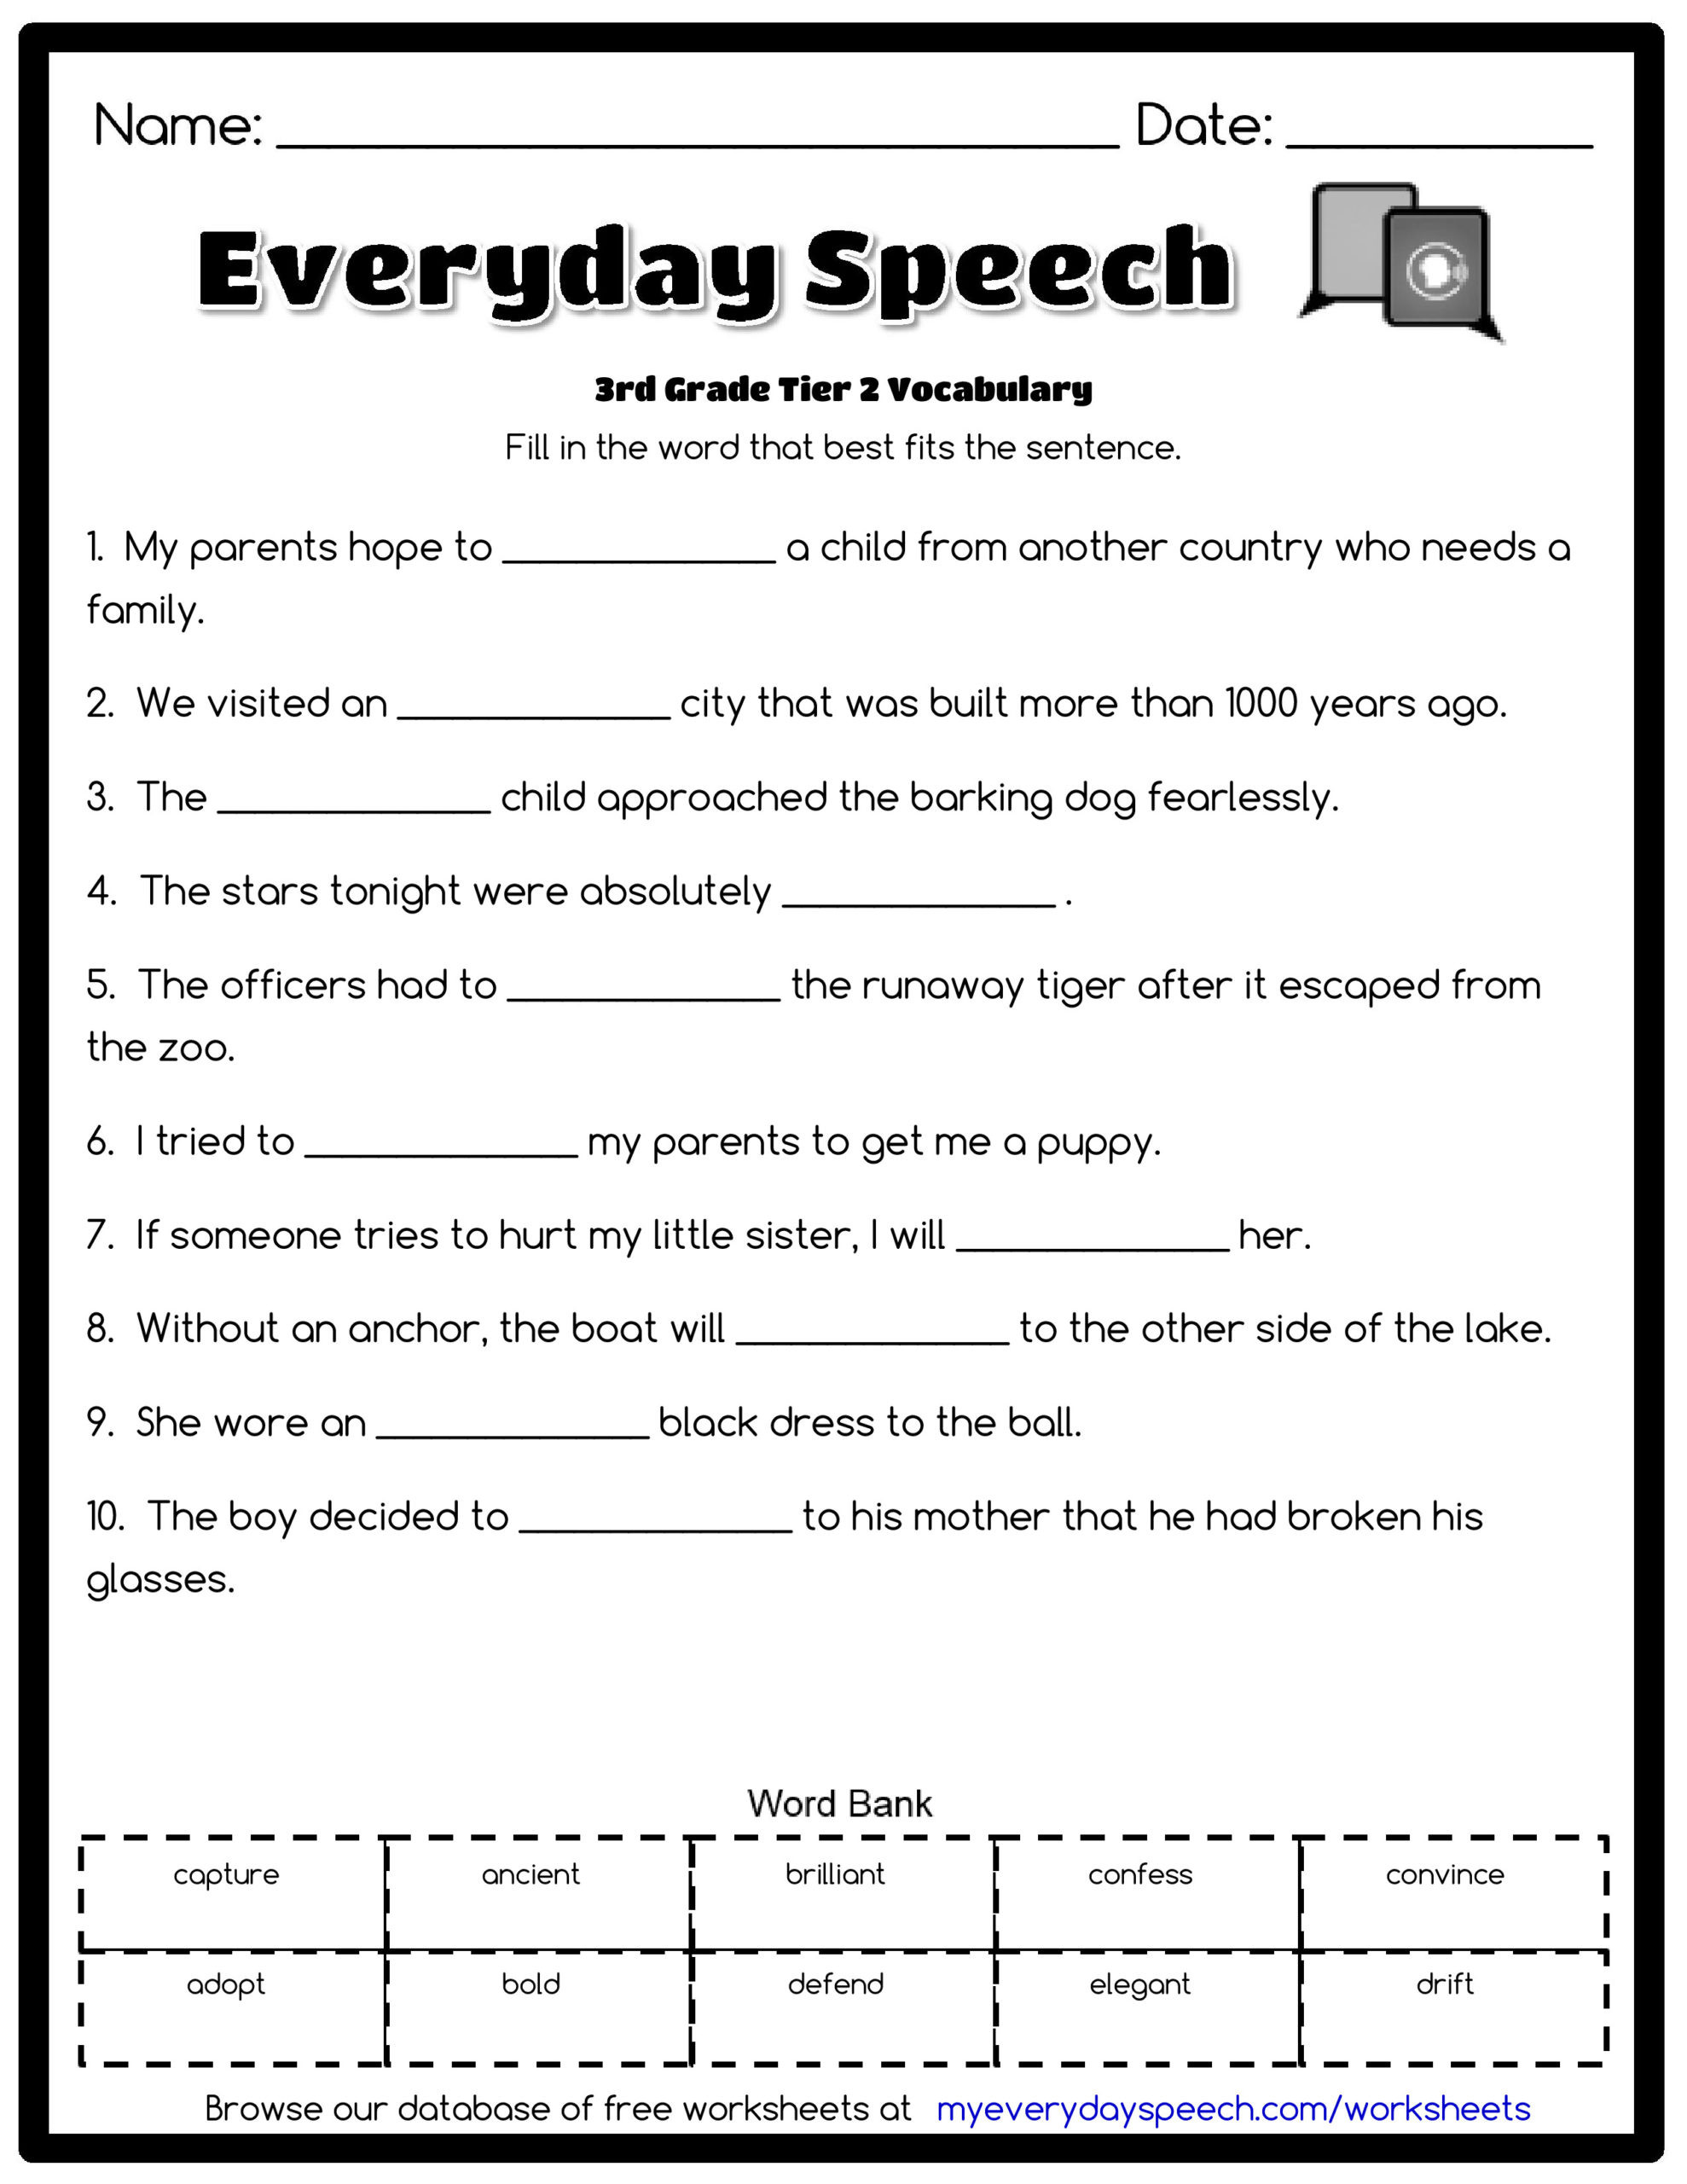 4th Grade Vocabulary Worksheets Homework Live Printable Division Tables Worksheets Free